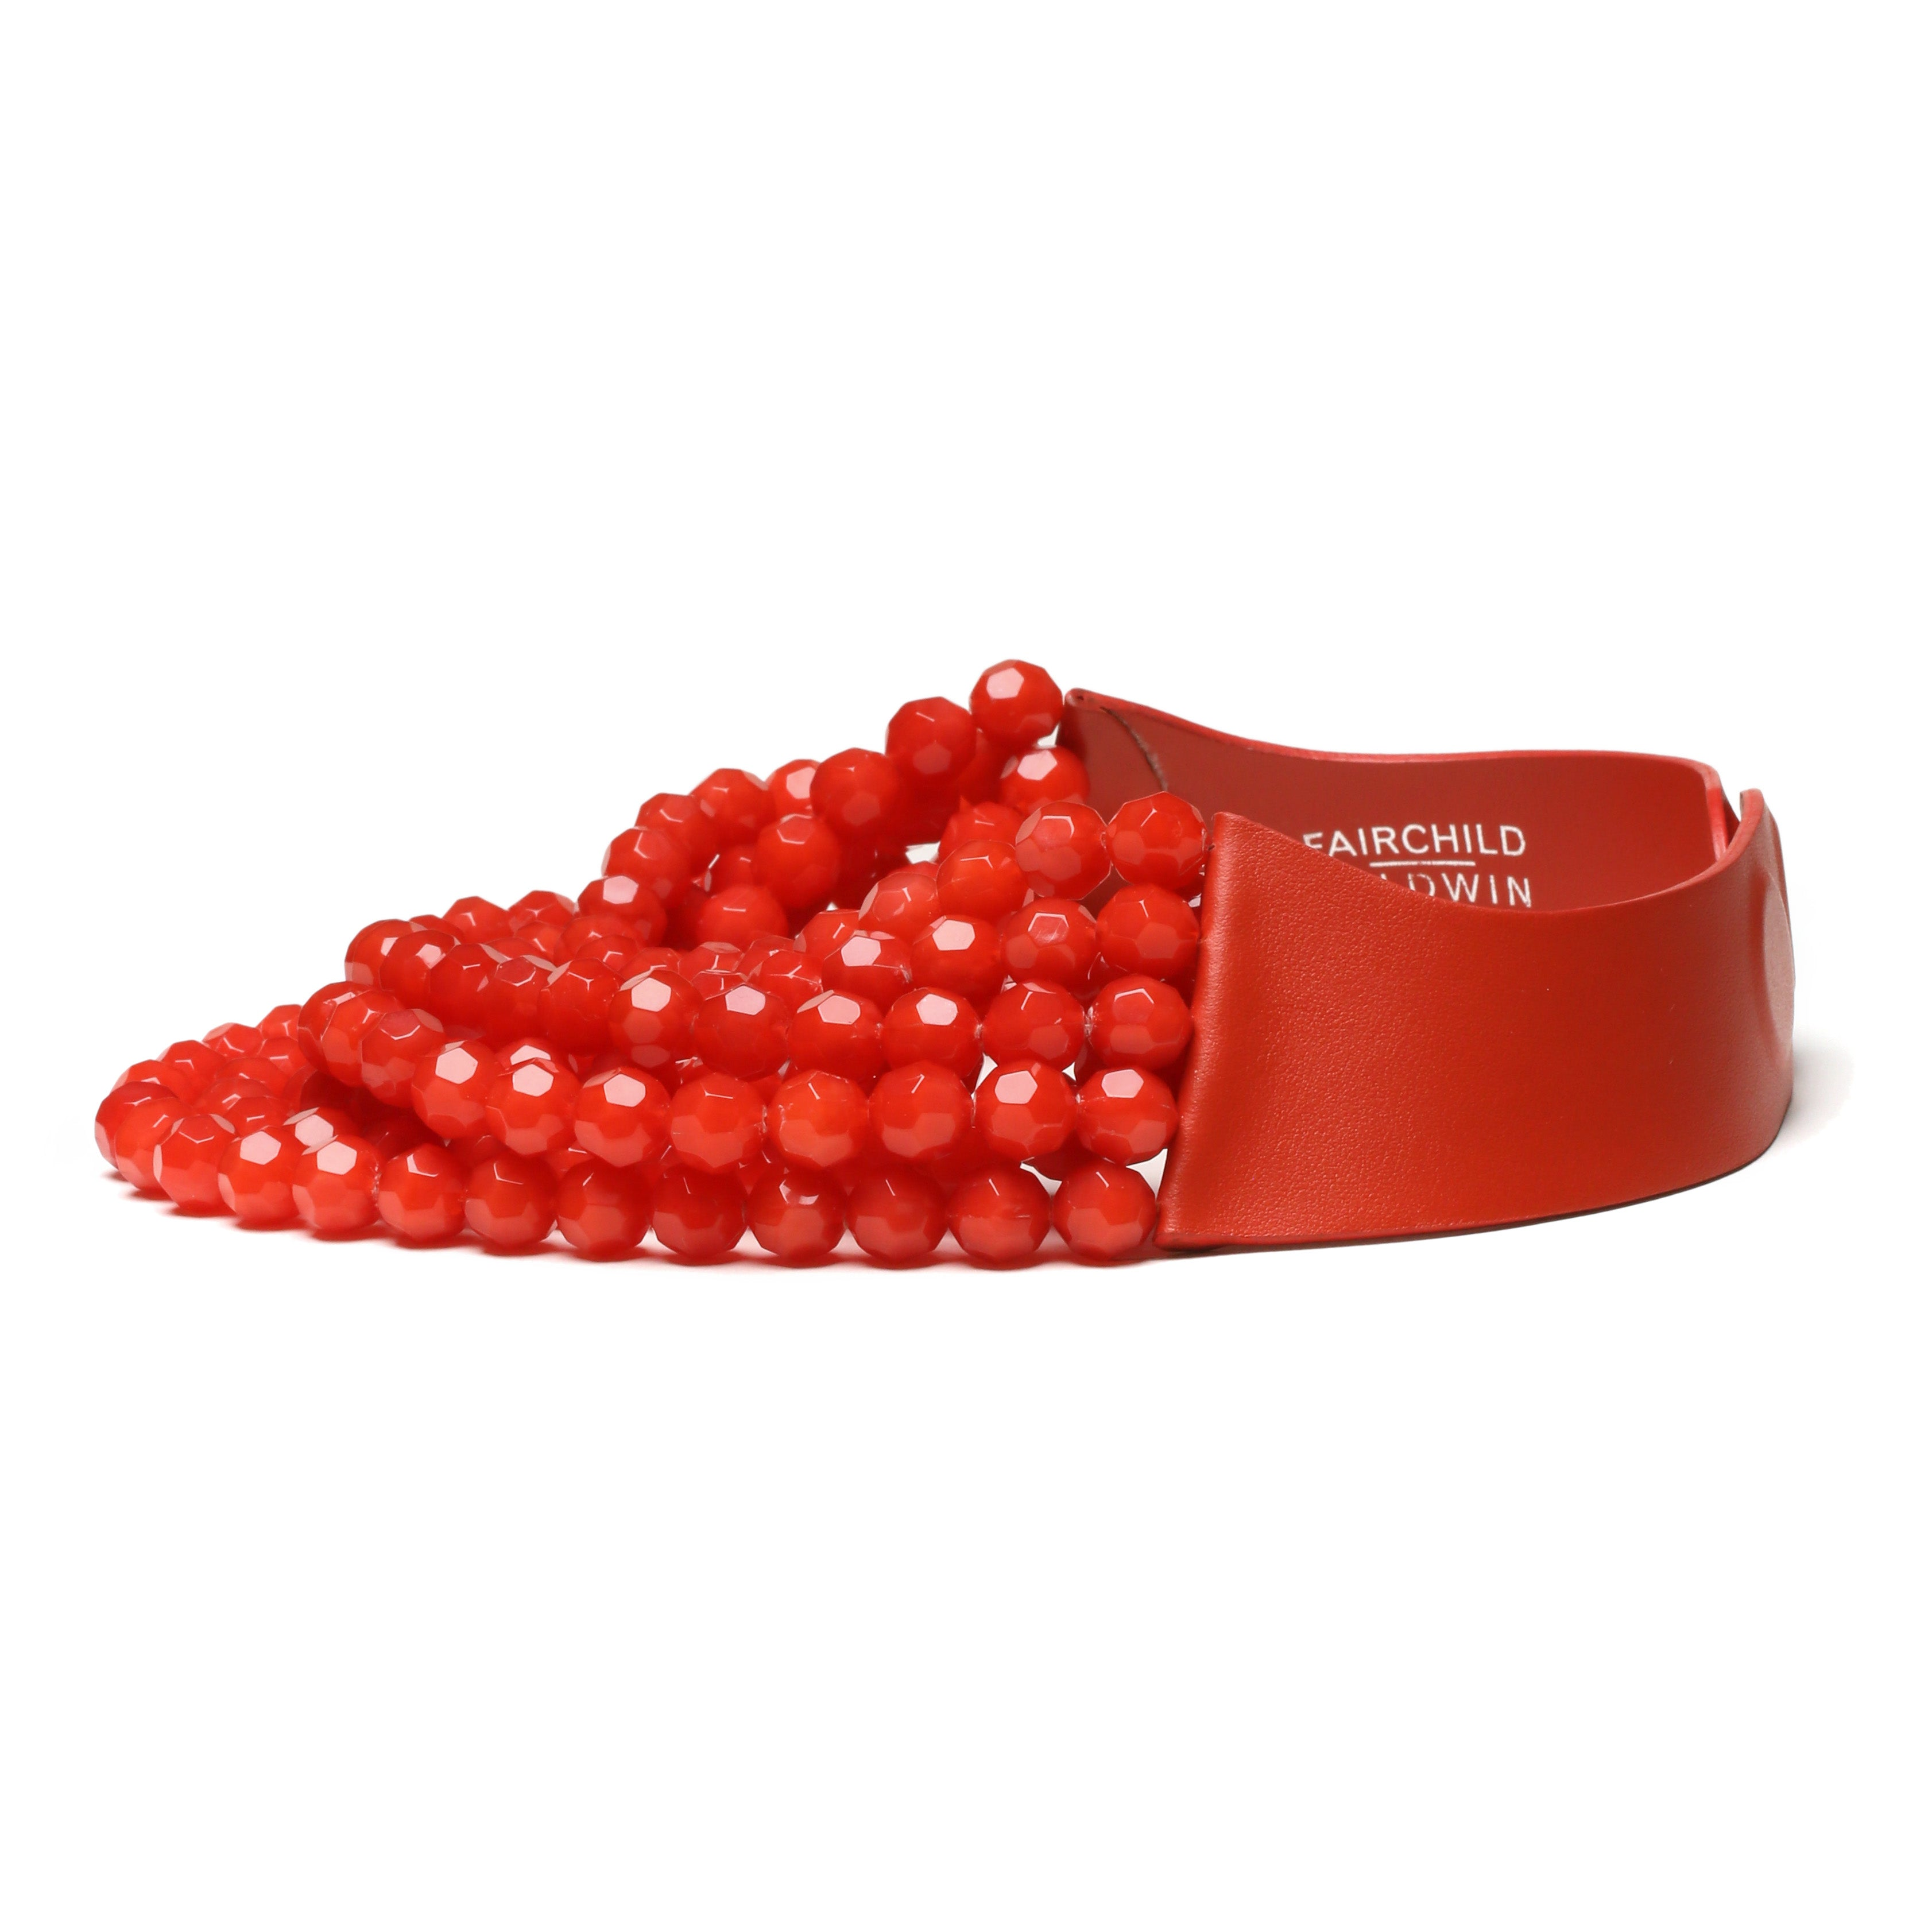 Red Coral - Fairchild Baldwin - Handmade in Italy